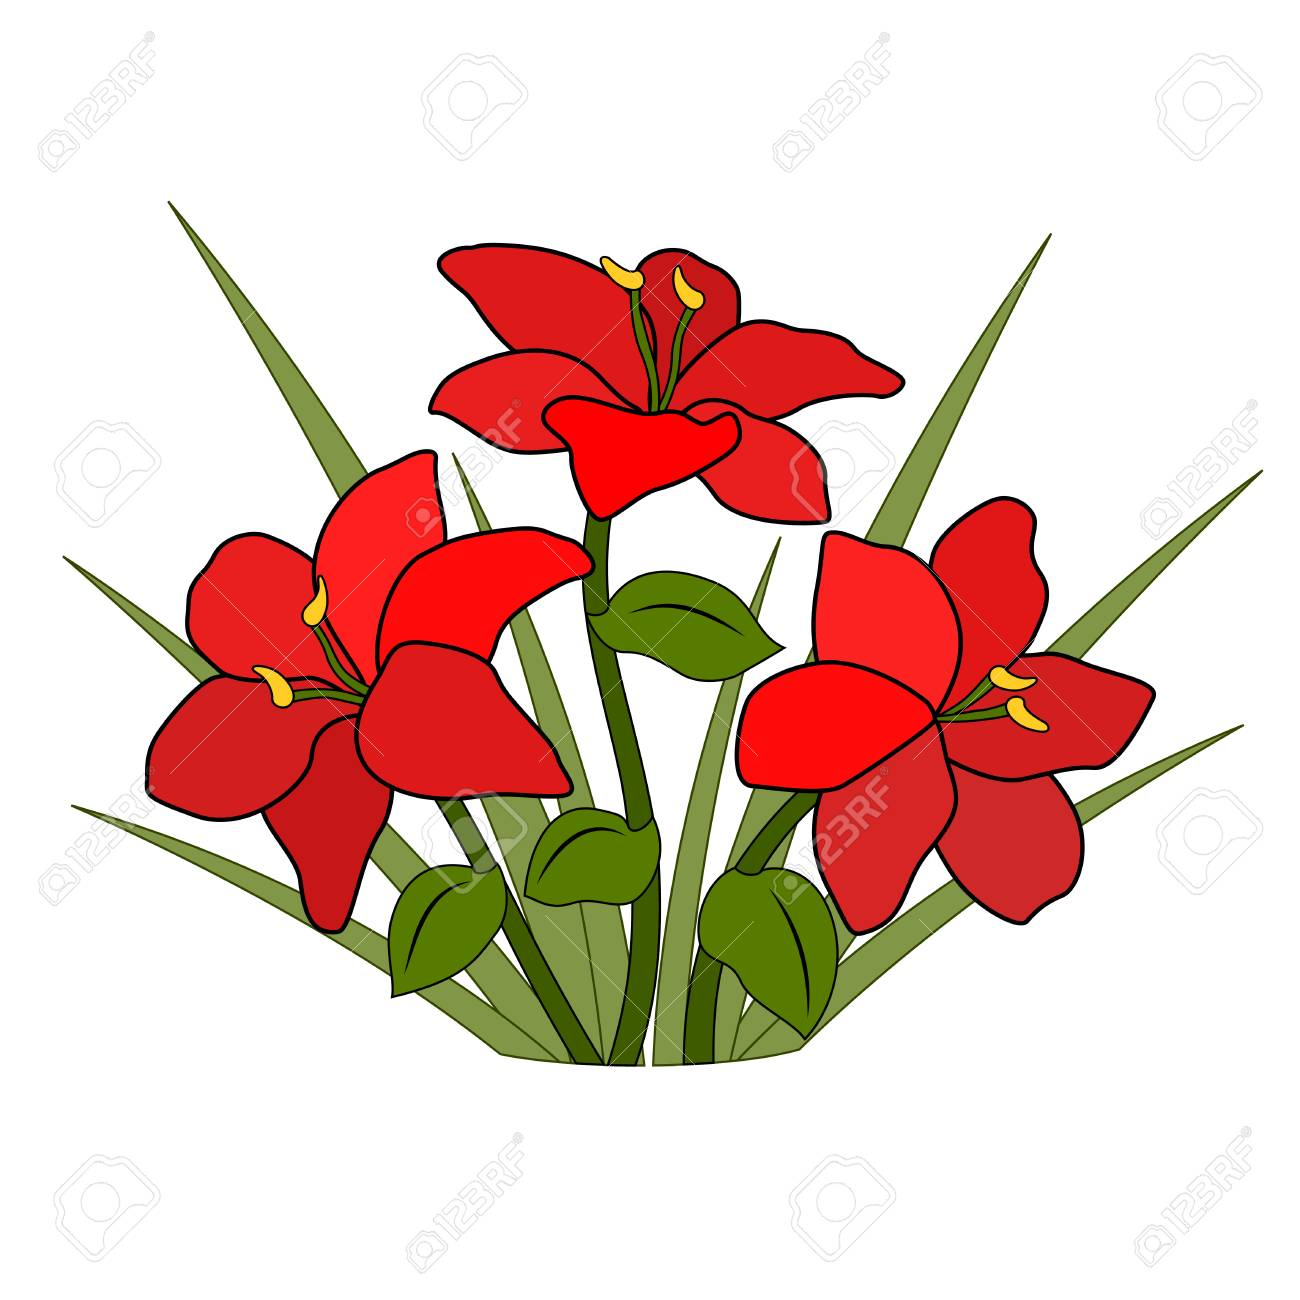 Red Flower Drawing - Bouquet Or Flower Bed Of Red Flowers, Six Petals And Grass, Green ...